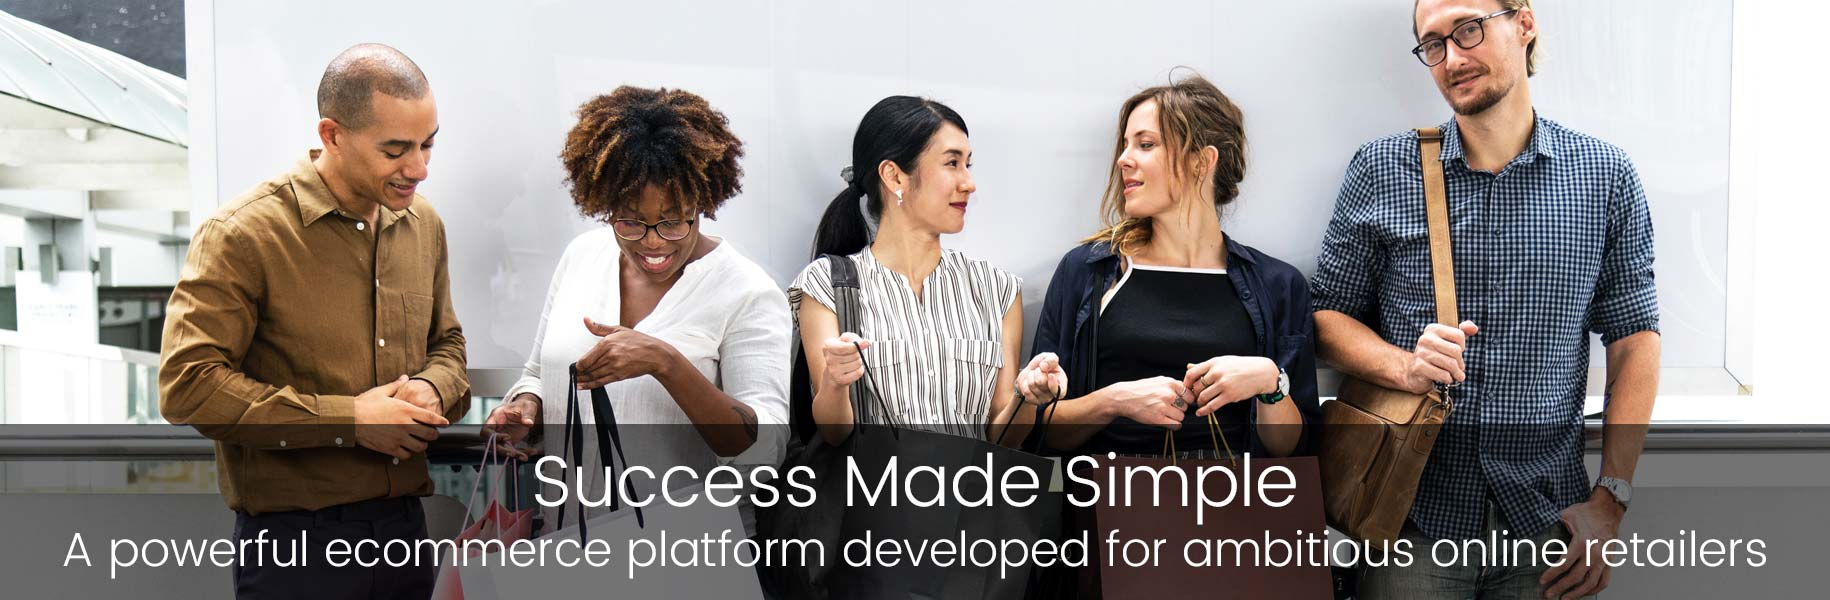 Success Made Simple – A powerful ecommerce platform developed for ambitious online retailers